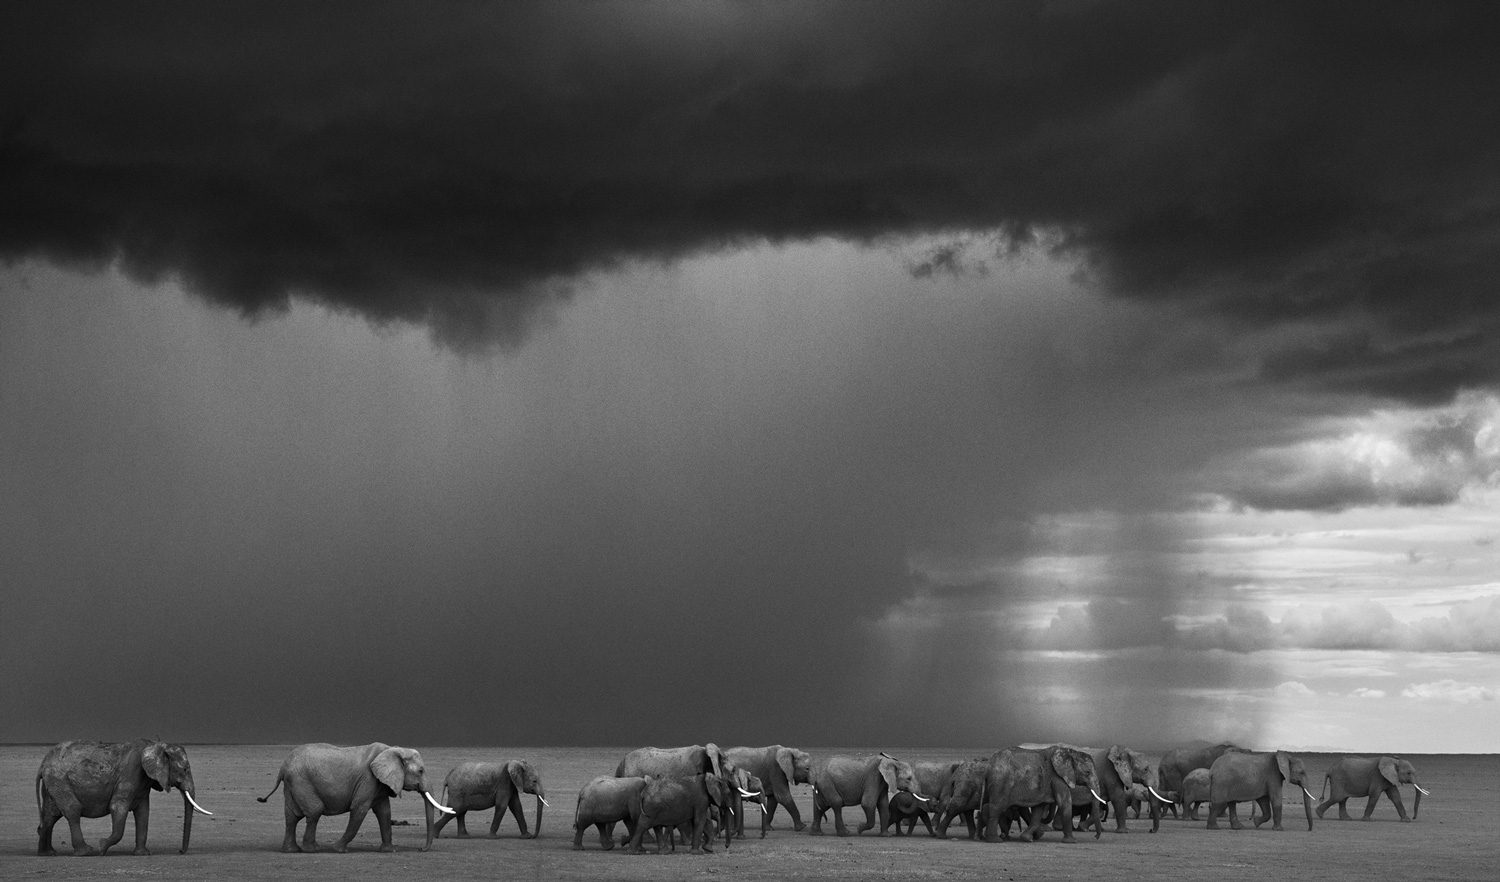 The Gathering Storm, Amboseli, Kenya